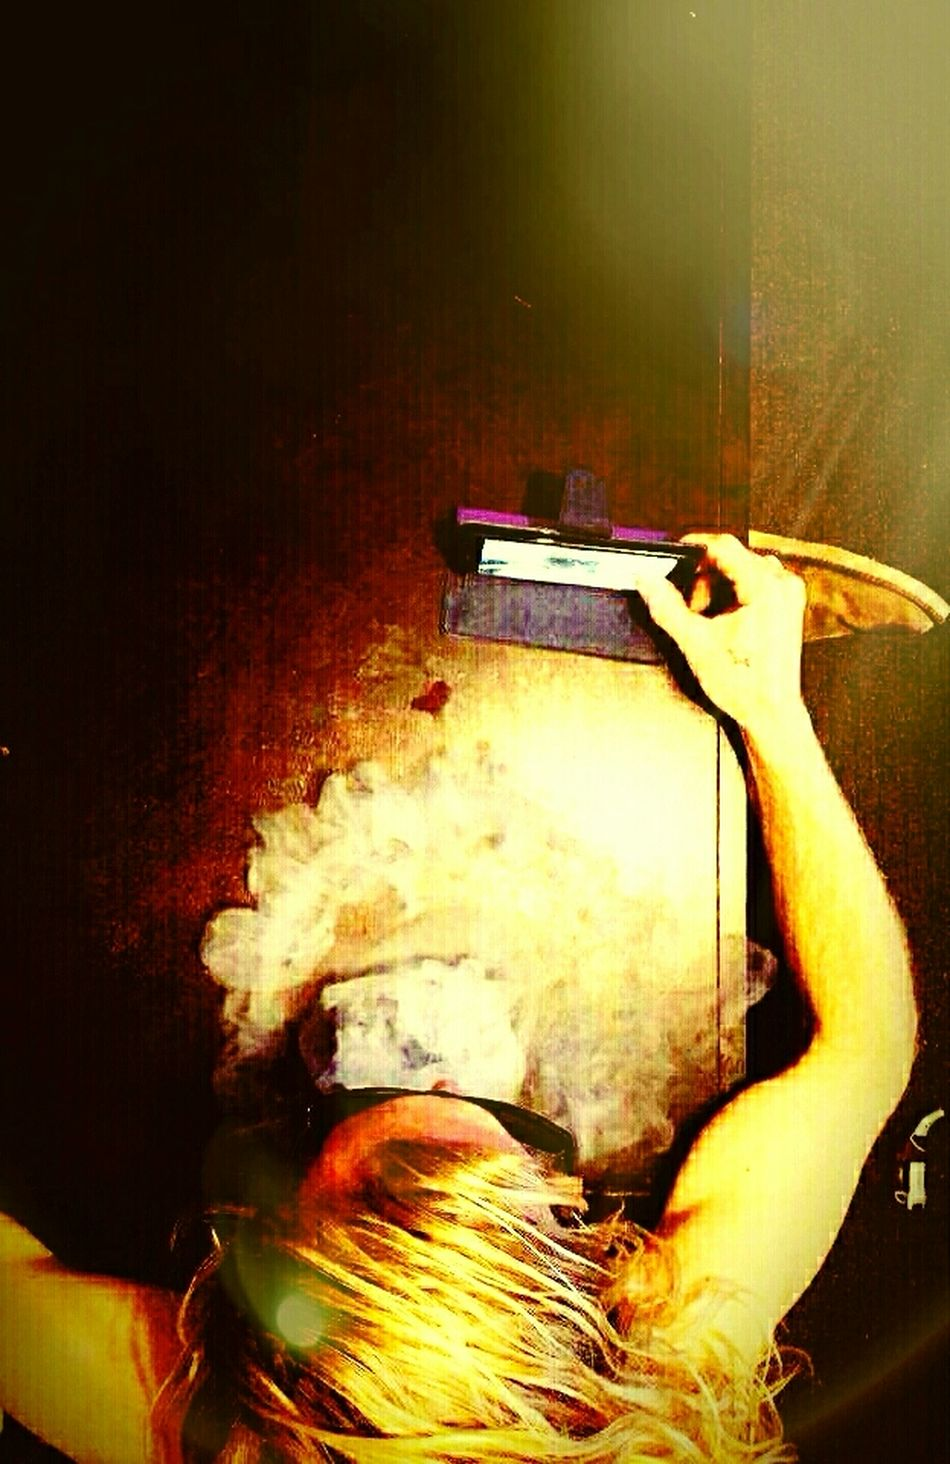 Letmetakeaselfie Self Portrait Smoke Photo Of The Day Taking Photos Smoking Cloudporn Photography Enjoying Life Androidography Faces Of EyeEm FacesOfEyeEm Drugs Photoart Photooftheday Cheese! Birds Eye View CreativePhotographer Professionalphotography